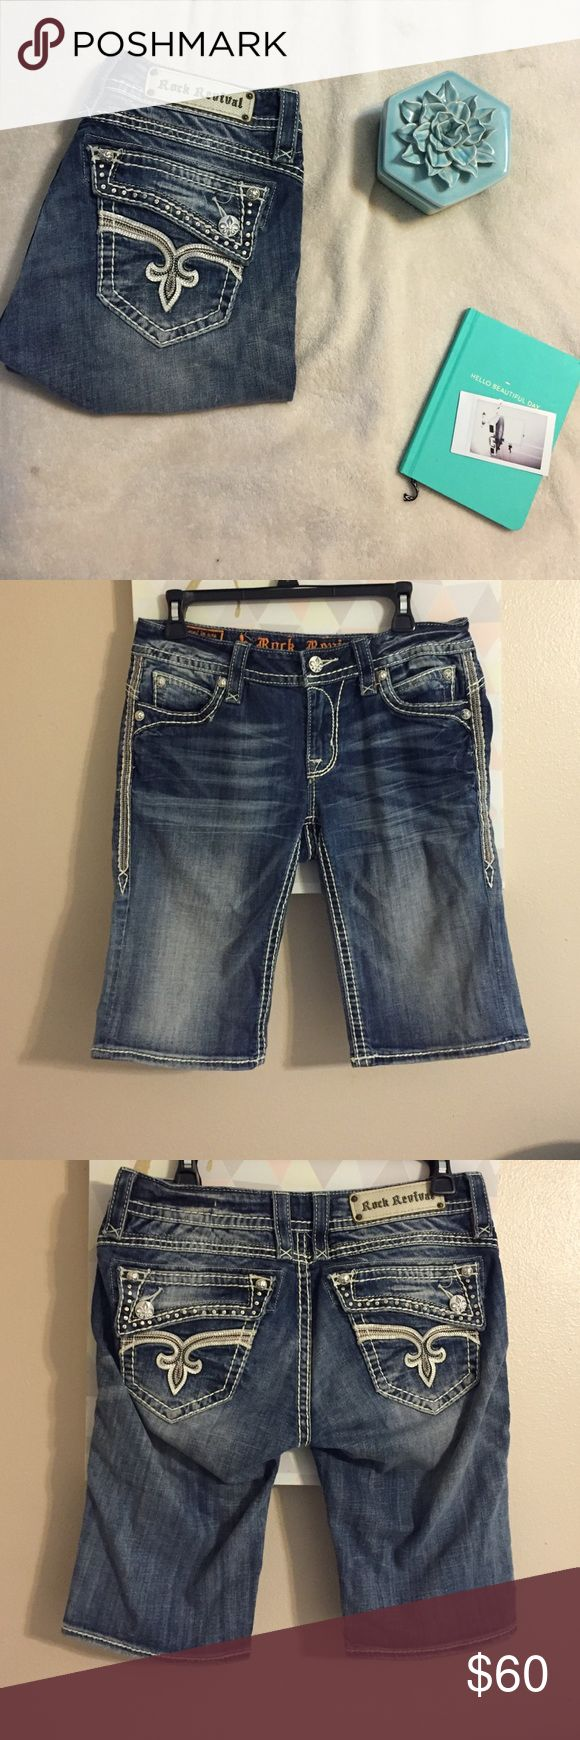 Rock revival Bermuda shorts New without tags! Great condition! No flaws. Looking to sell these. Firm on price. Rock Revival Shorts Bermudas